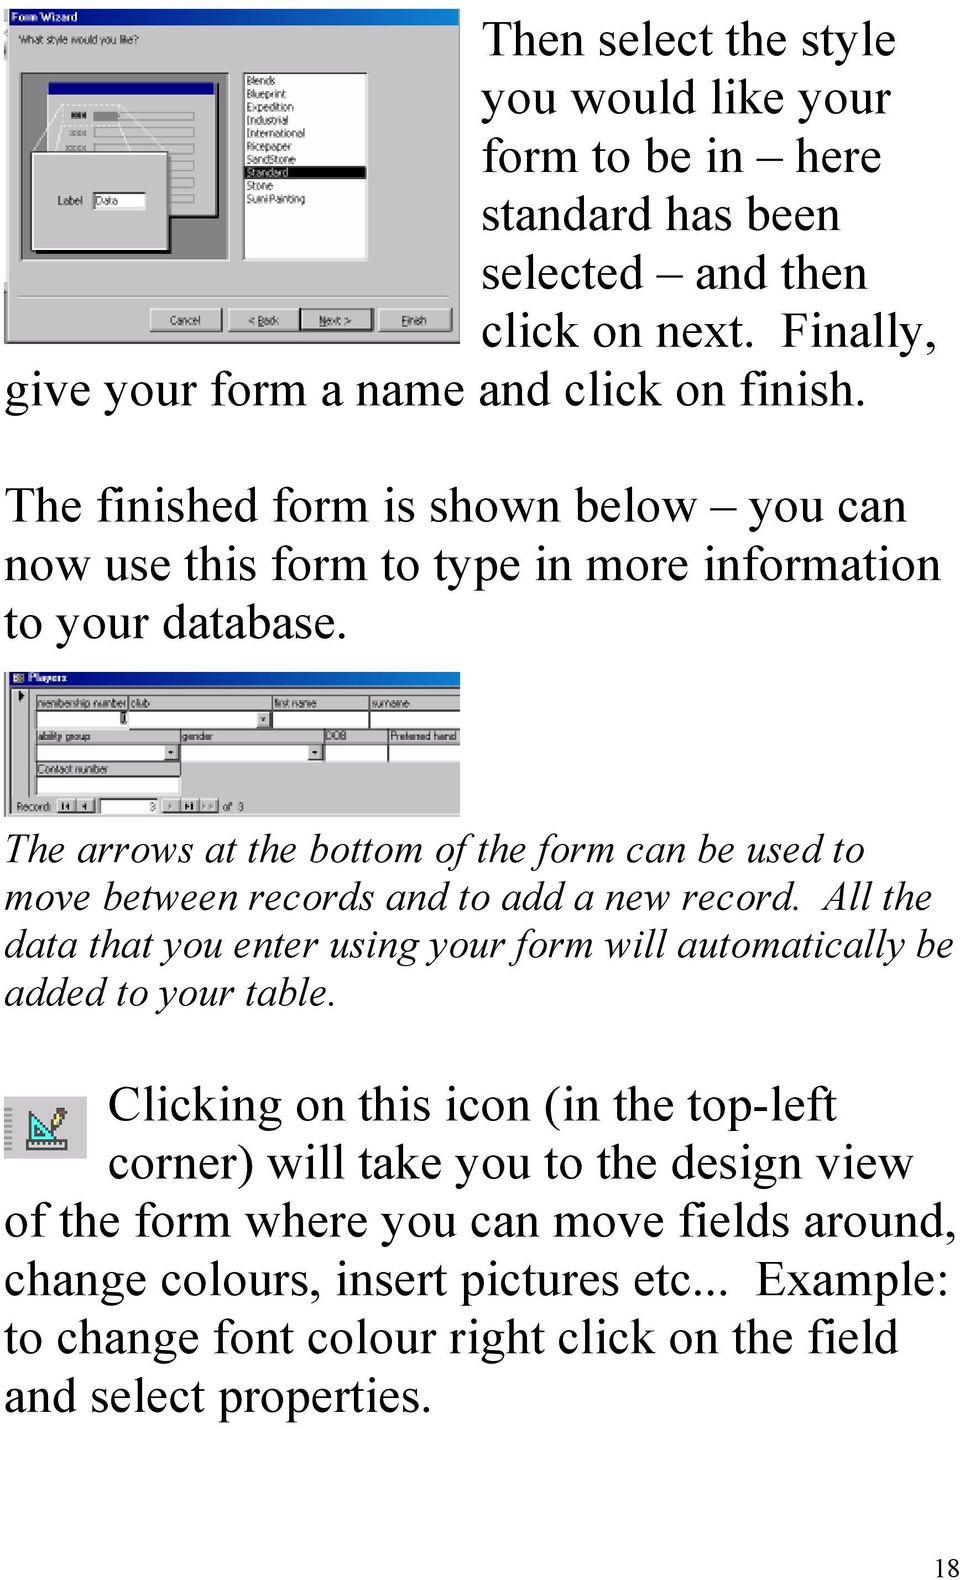 The arrows at the bottom of the form can be used to move between records and to add a new record.